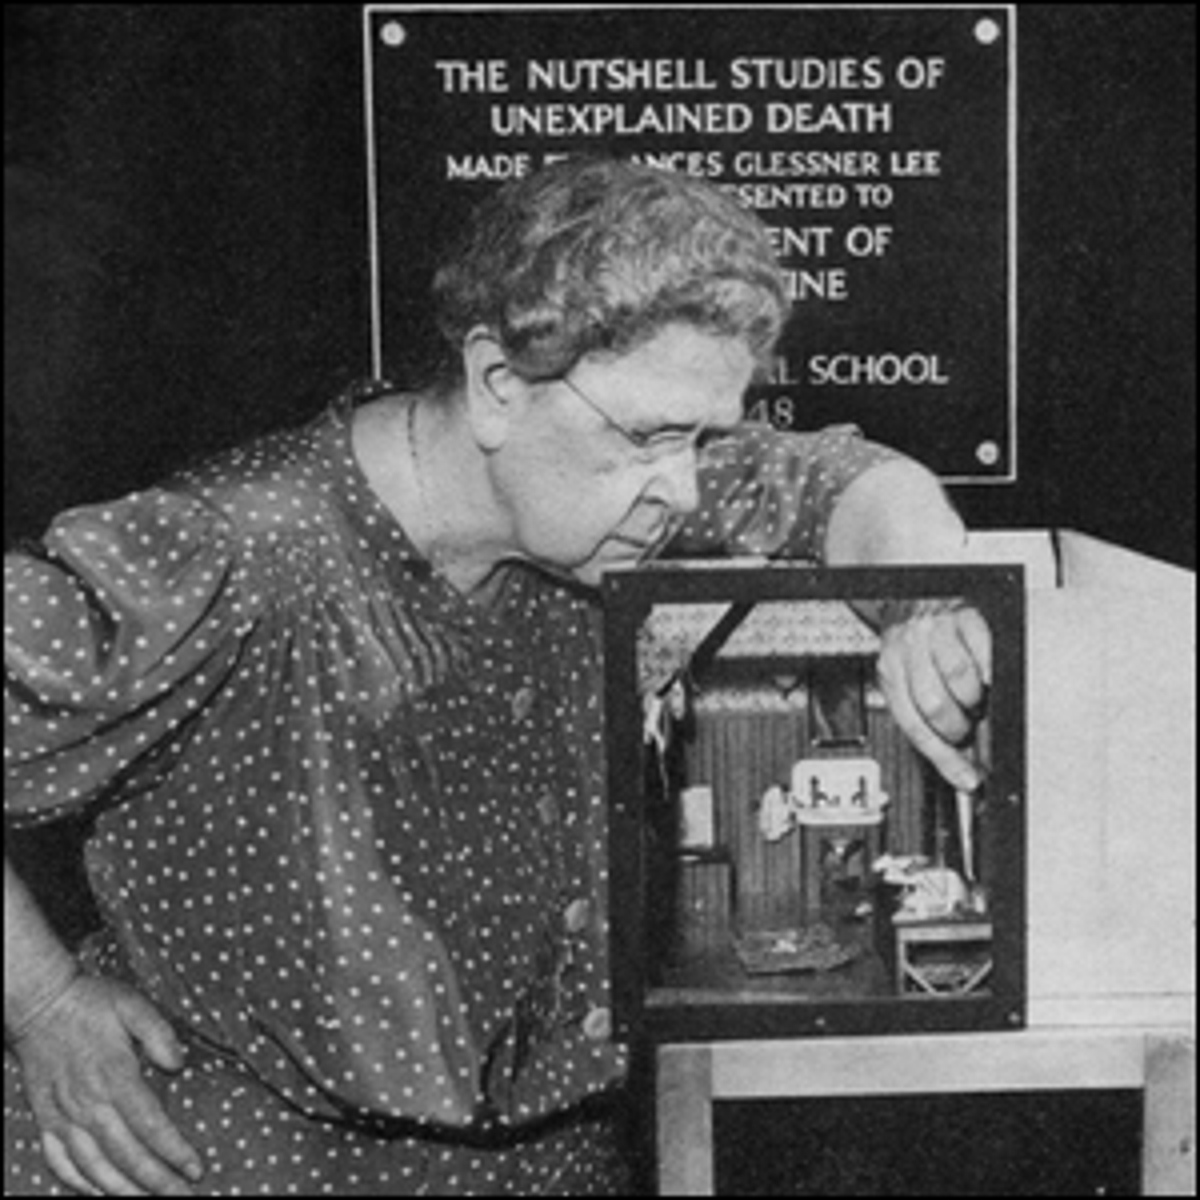 A photo of Frances Glessner Lee showing off one of her miniature dollhouse dioramas. (S.E.P. - February 10, 1949)